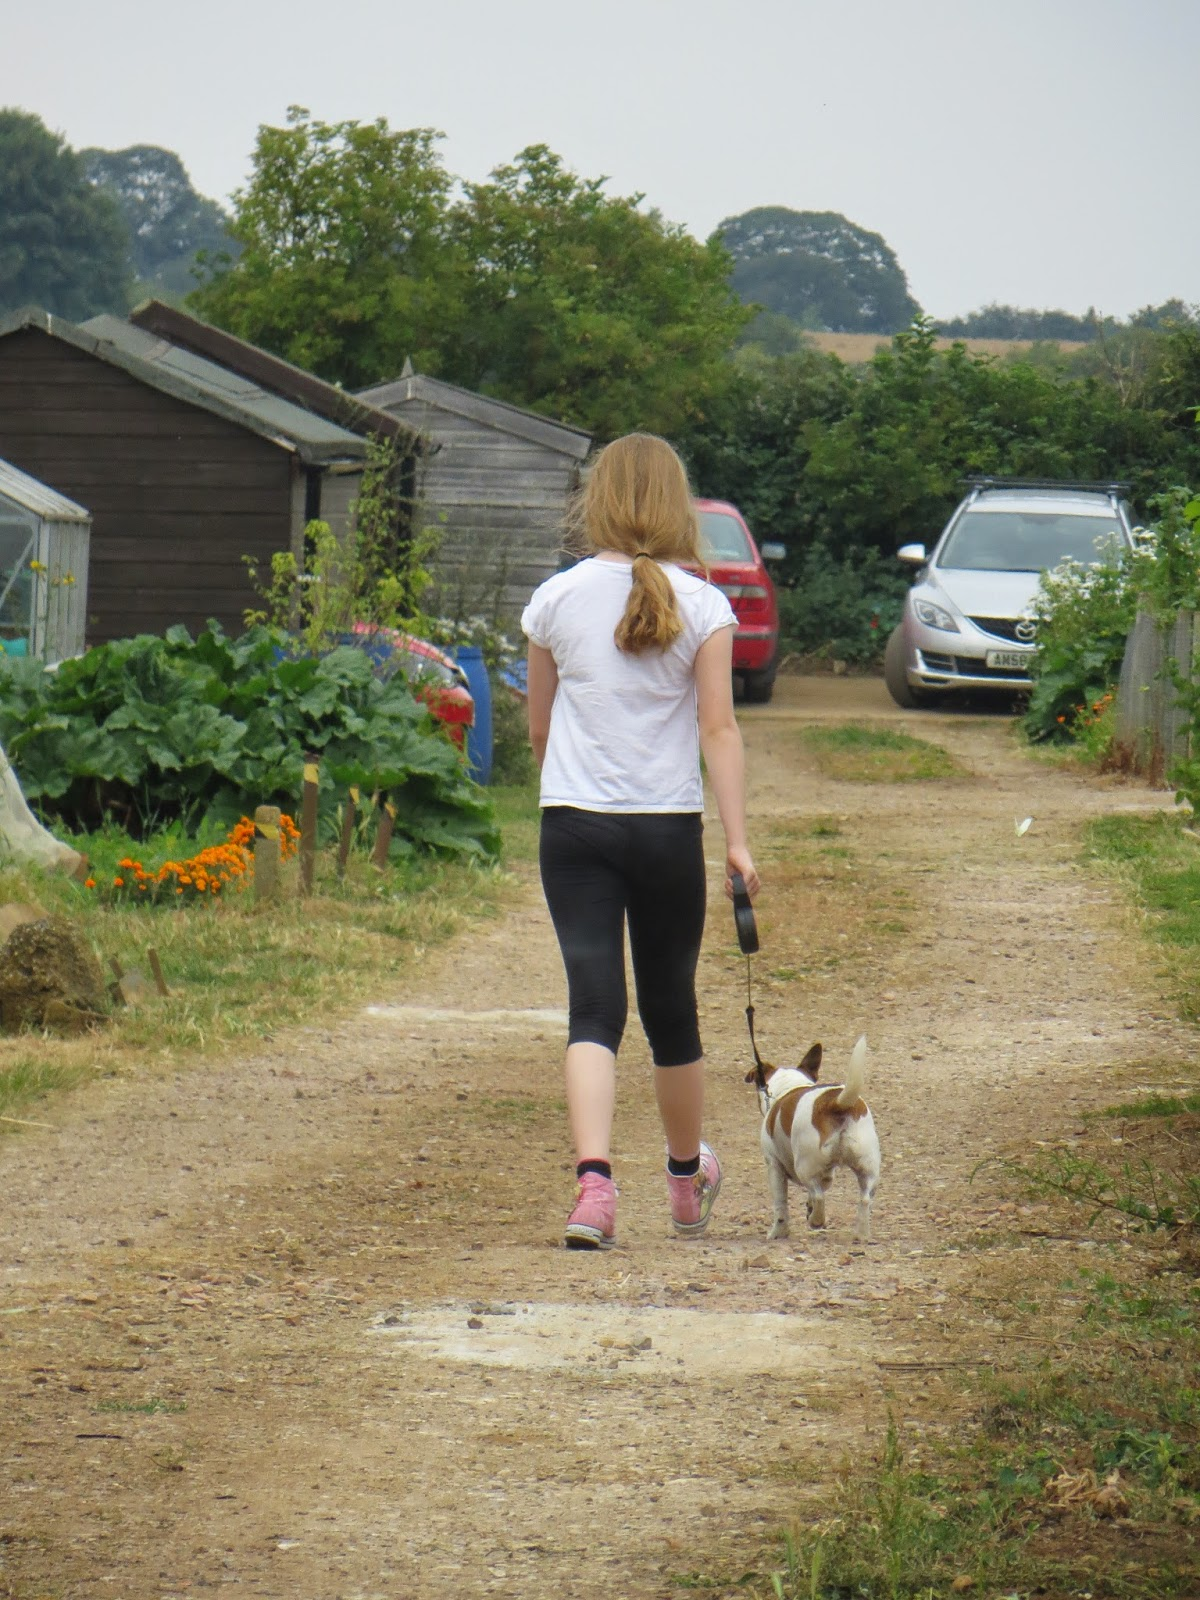 visitors were free to take a stroll and look round the allotments.